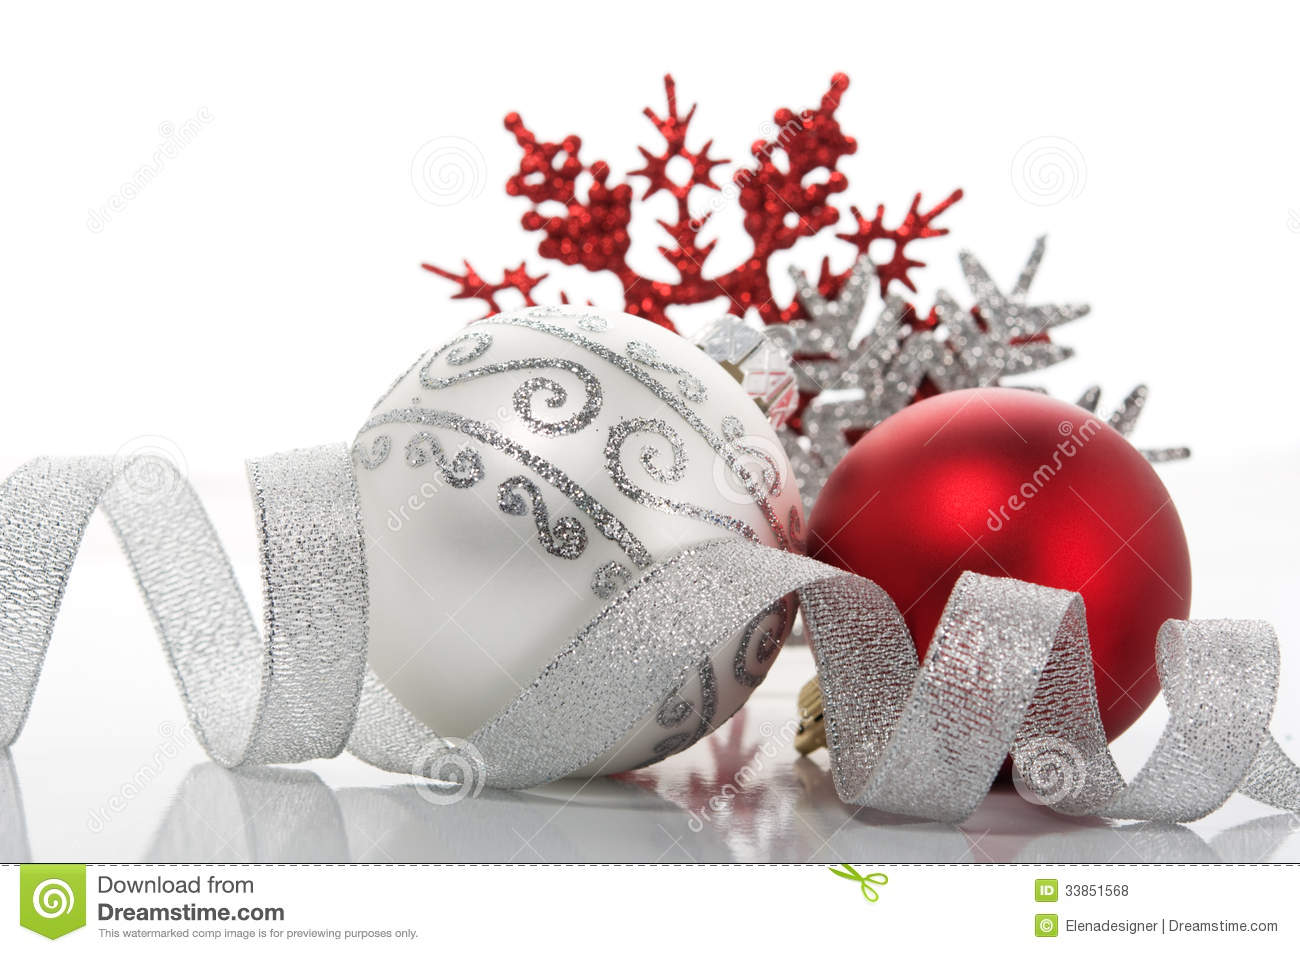 Red and silver xmas decoration stock photo image 33851568 for Christmas tree with red and silver decorations